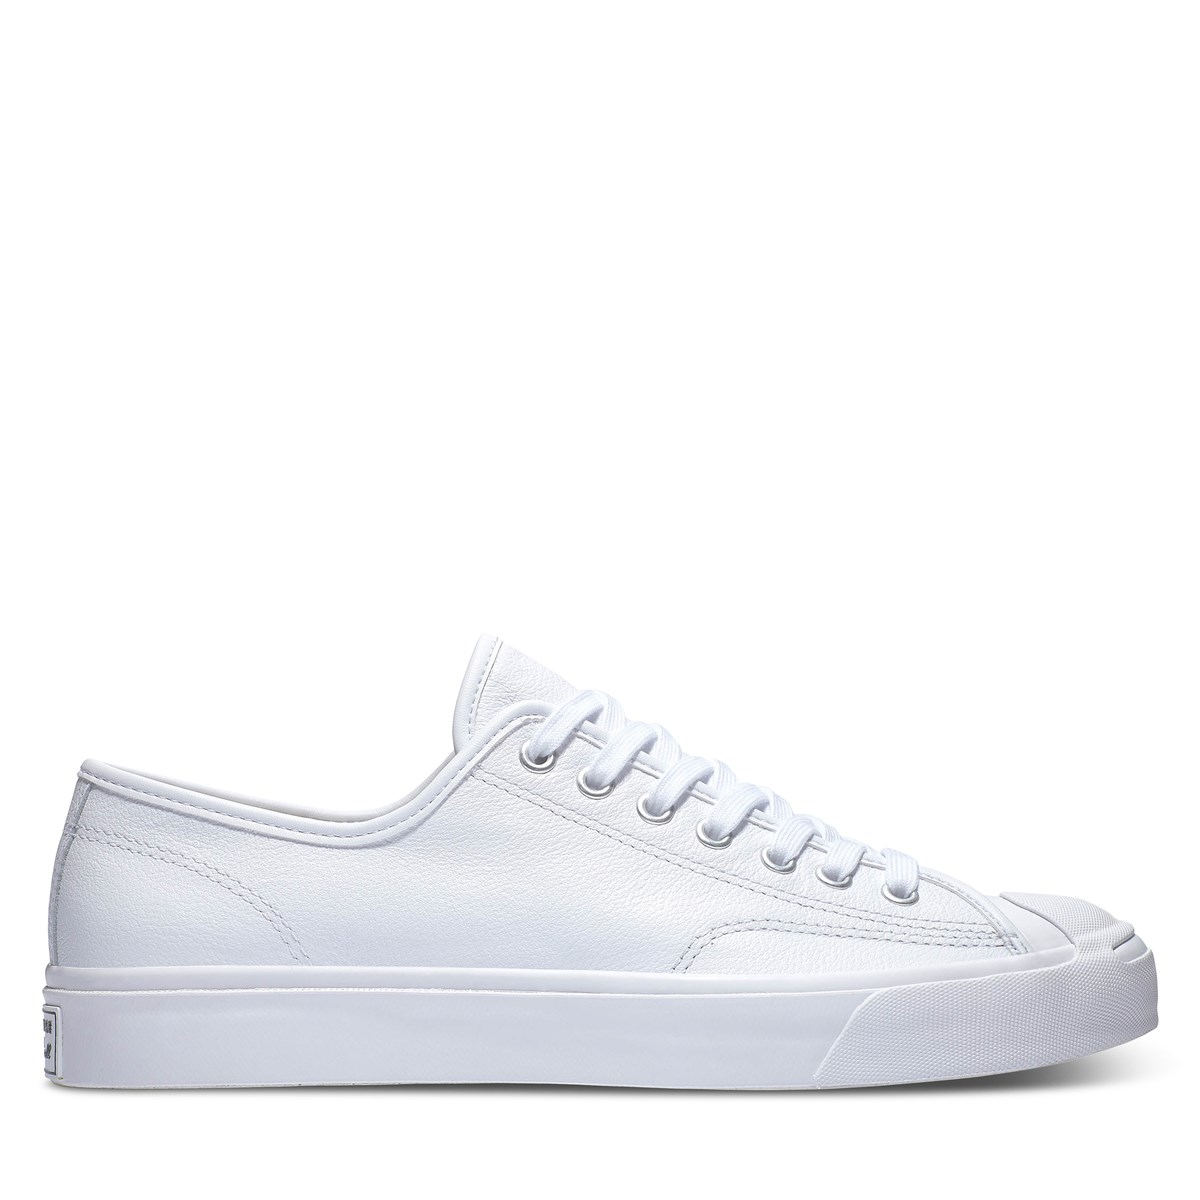 Men's Jack Purcell Sneakers in White Leather